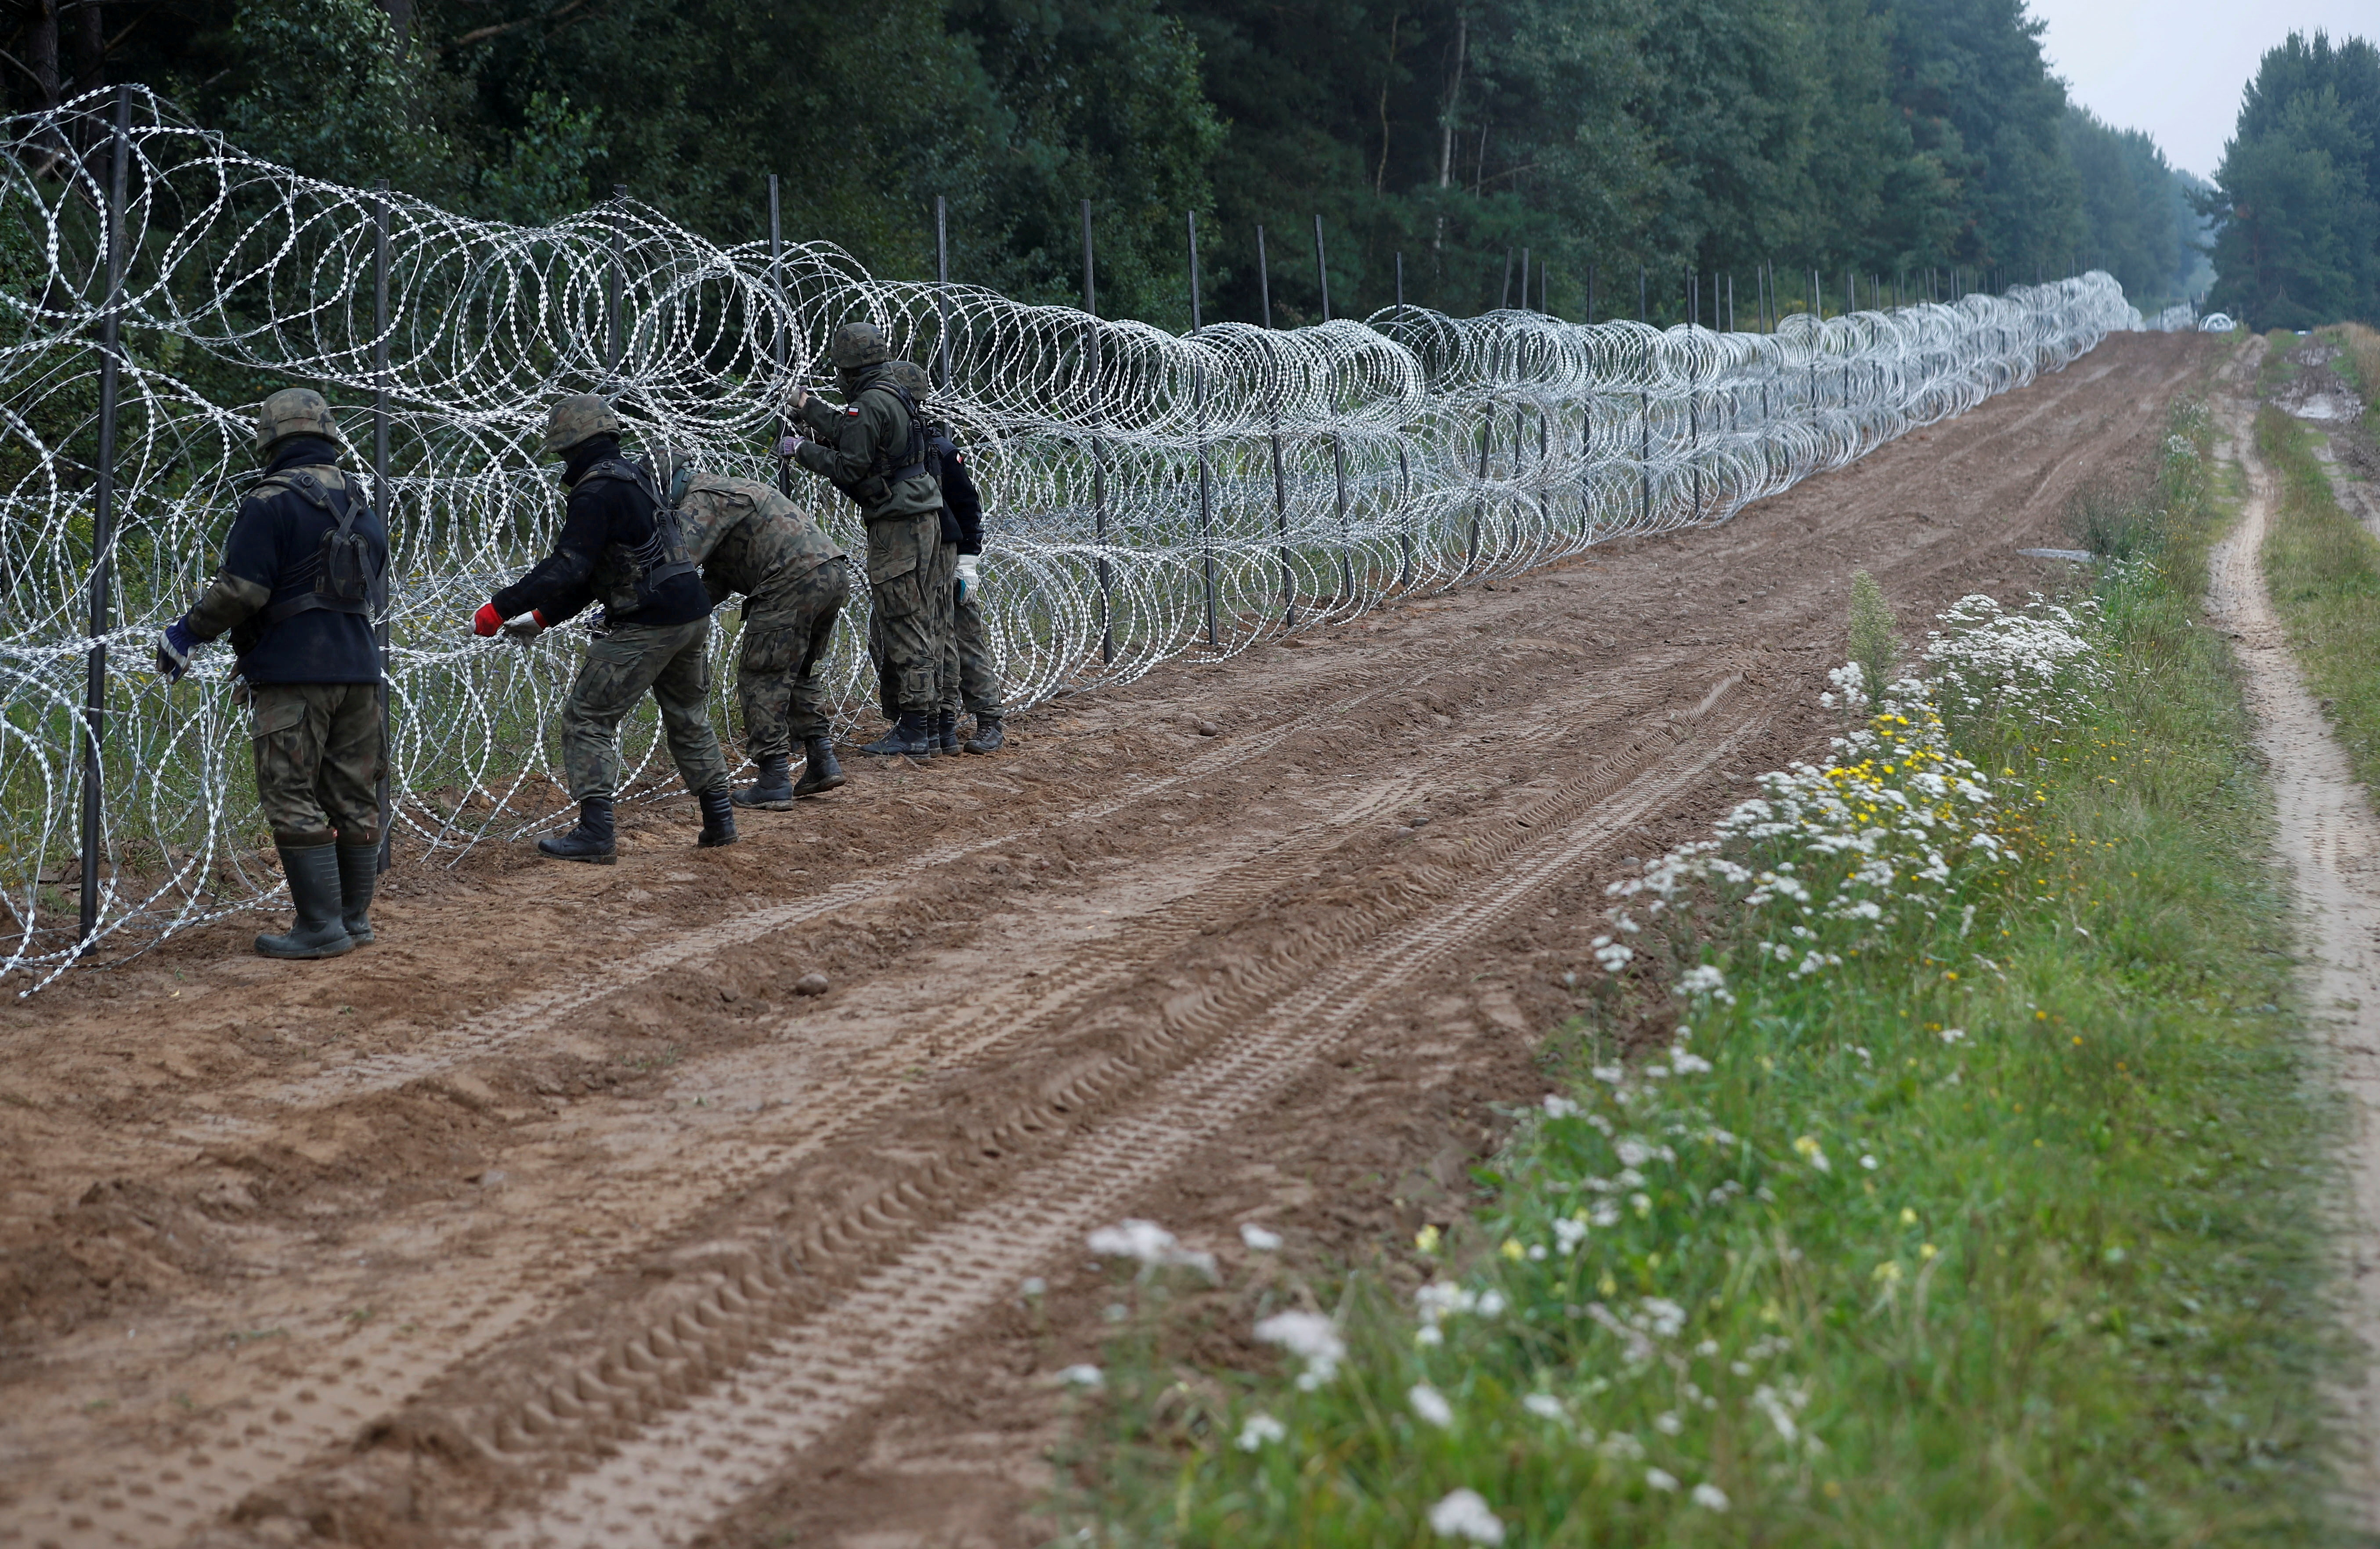 Polish soldiers build a fence on the border between Poland and Belarus near the village of Nomiki, Poland August 26, 2021. REUTERS/Kacper Pempel/File Photo